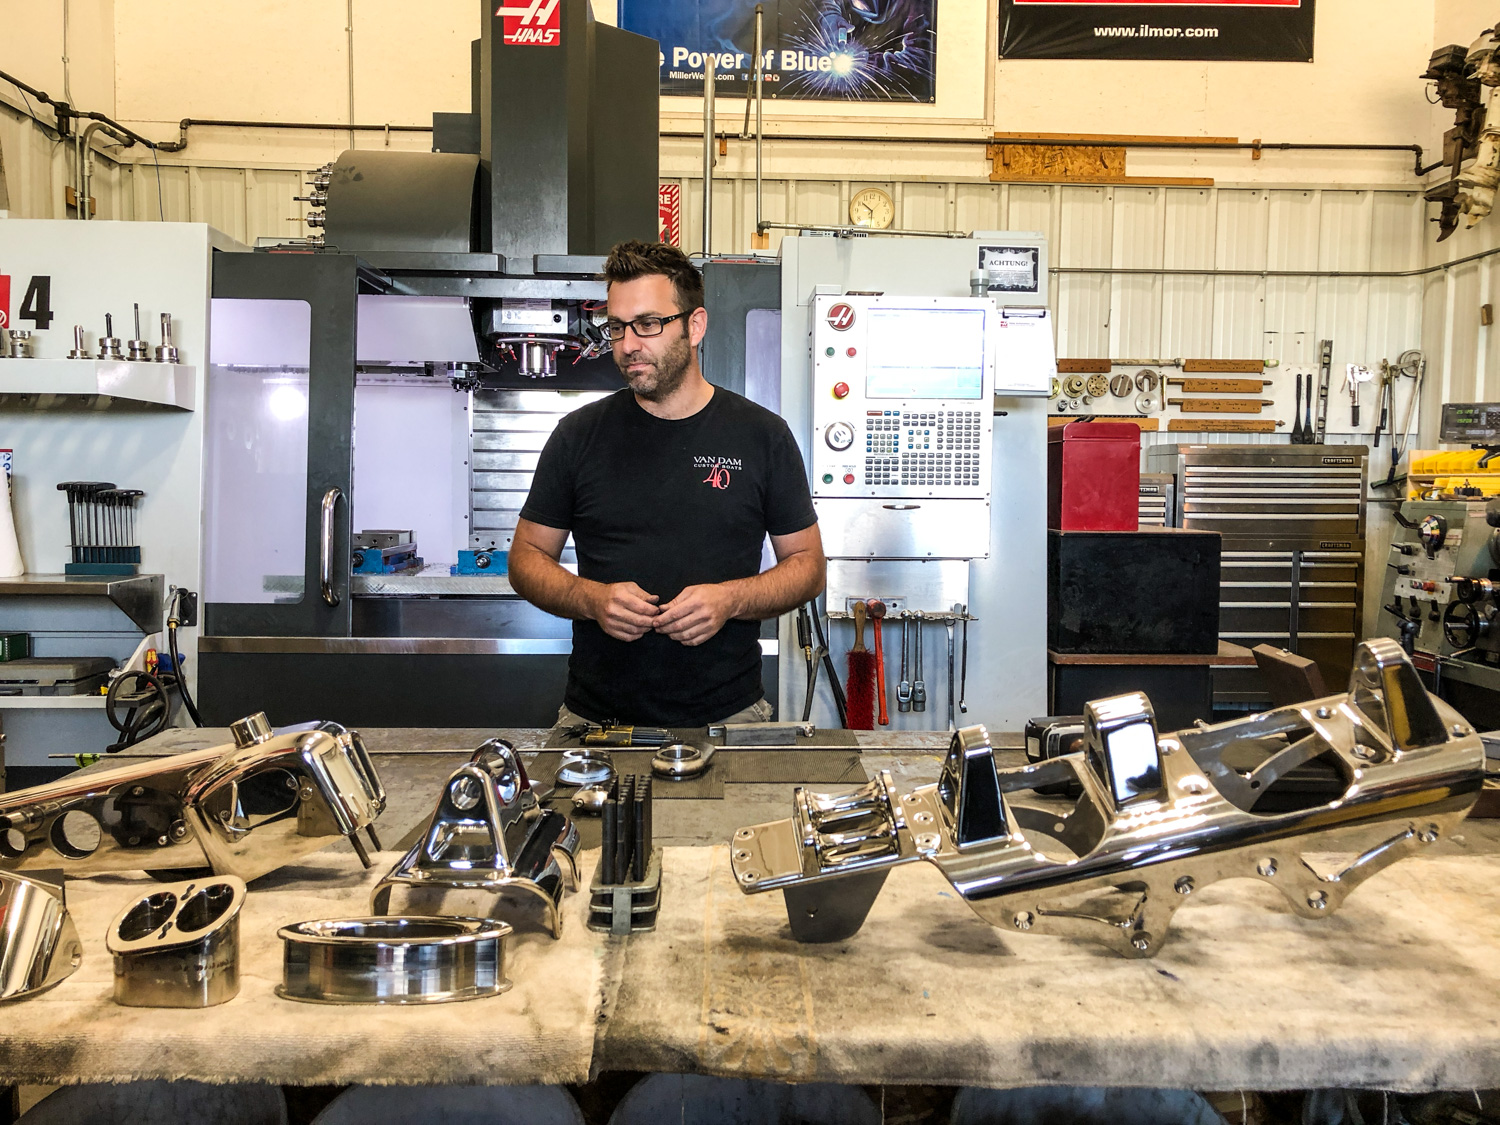 VanDam has an entire room dedicated to creating custom stainless trim pieces for their vessels